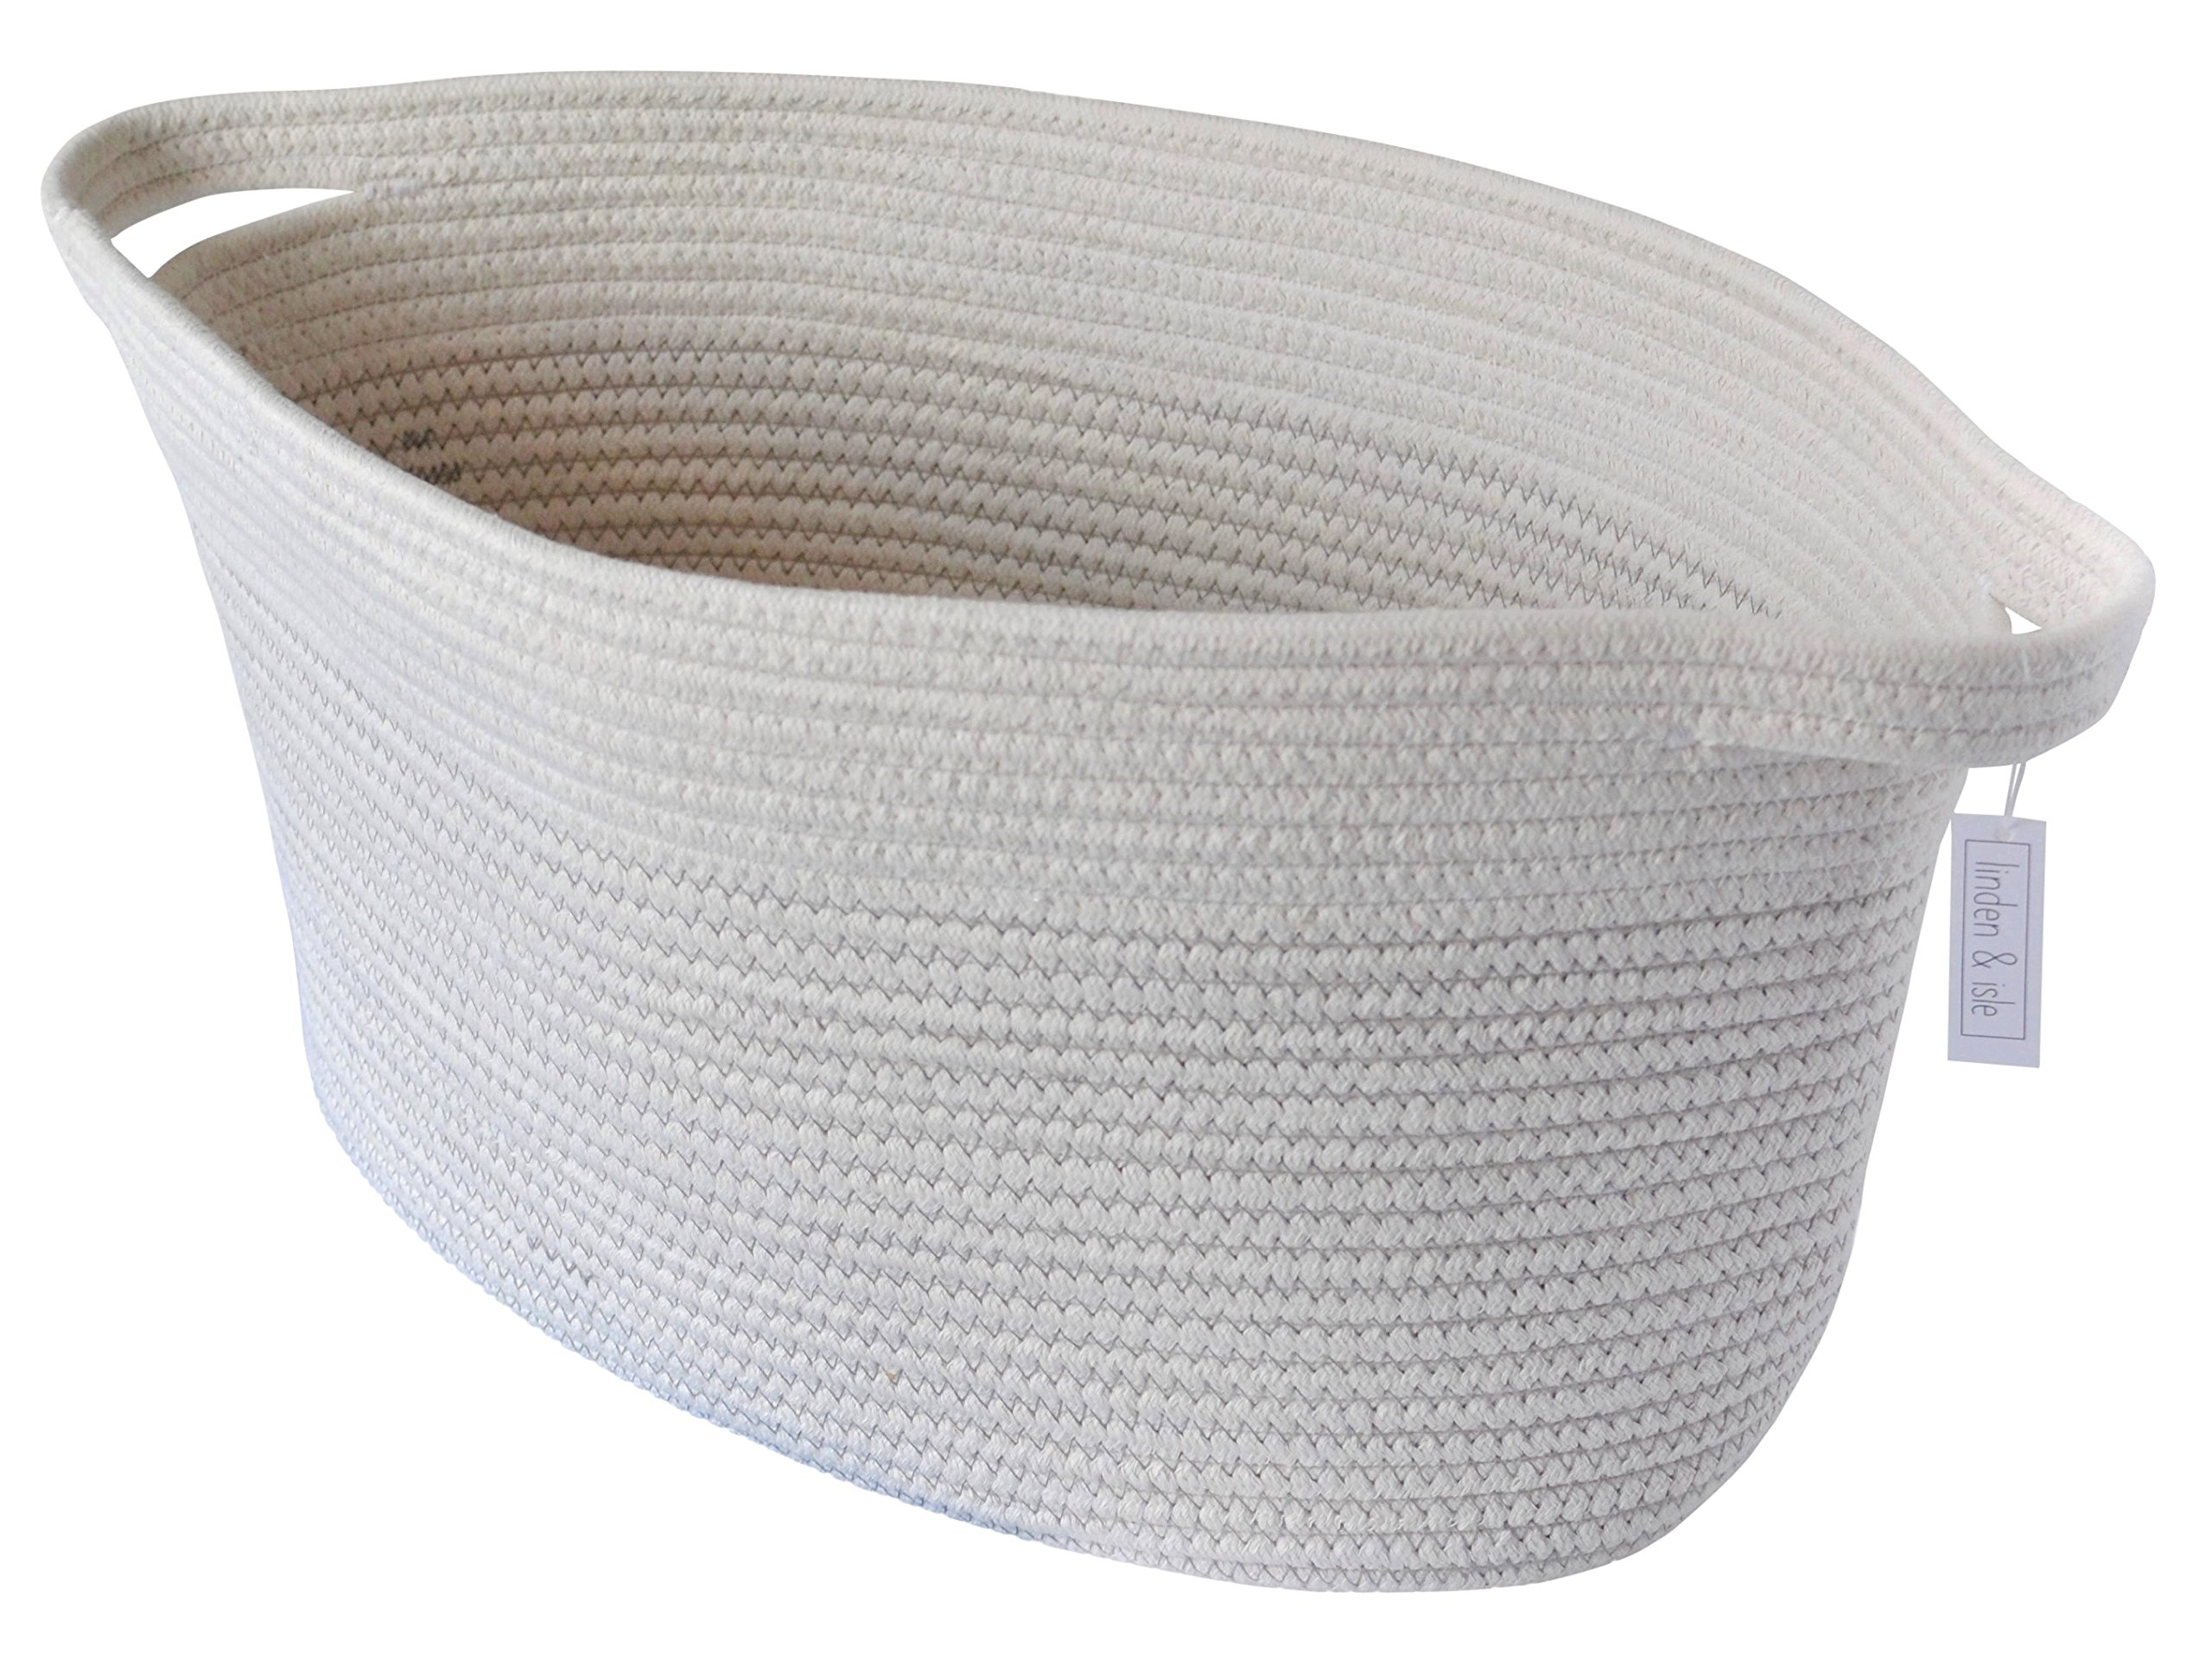 "linden & isle Cotton Rope Storage Basket | Large storage bin for Toy Storage, Blankets, Living Room Decor, Nursery Storage, Laundry - 22""x 10.3""x 11.5"" - Off White w/Gray Thread - SIZE: 22""x 10.3""x 11.5""- Oval Unique large oval shape is designed to fit in small spaces but provide large storage capacity. Neutral colors makes this basket perfect storage for any room and use. Living room storage, laundry, toy storage, nursery, bedroom, kids room etc. - living-room-decor, living-room, baskets-storage - 91iOxRsXgOL -"